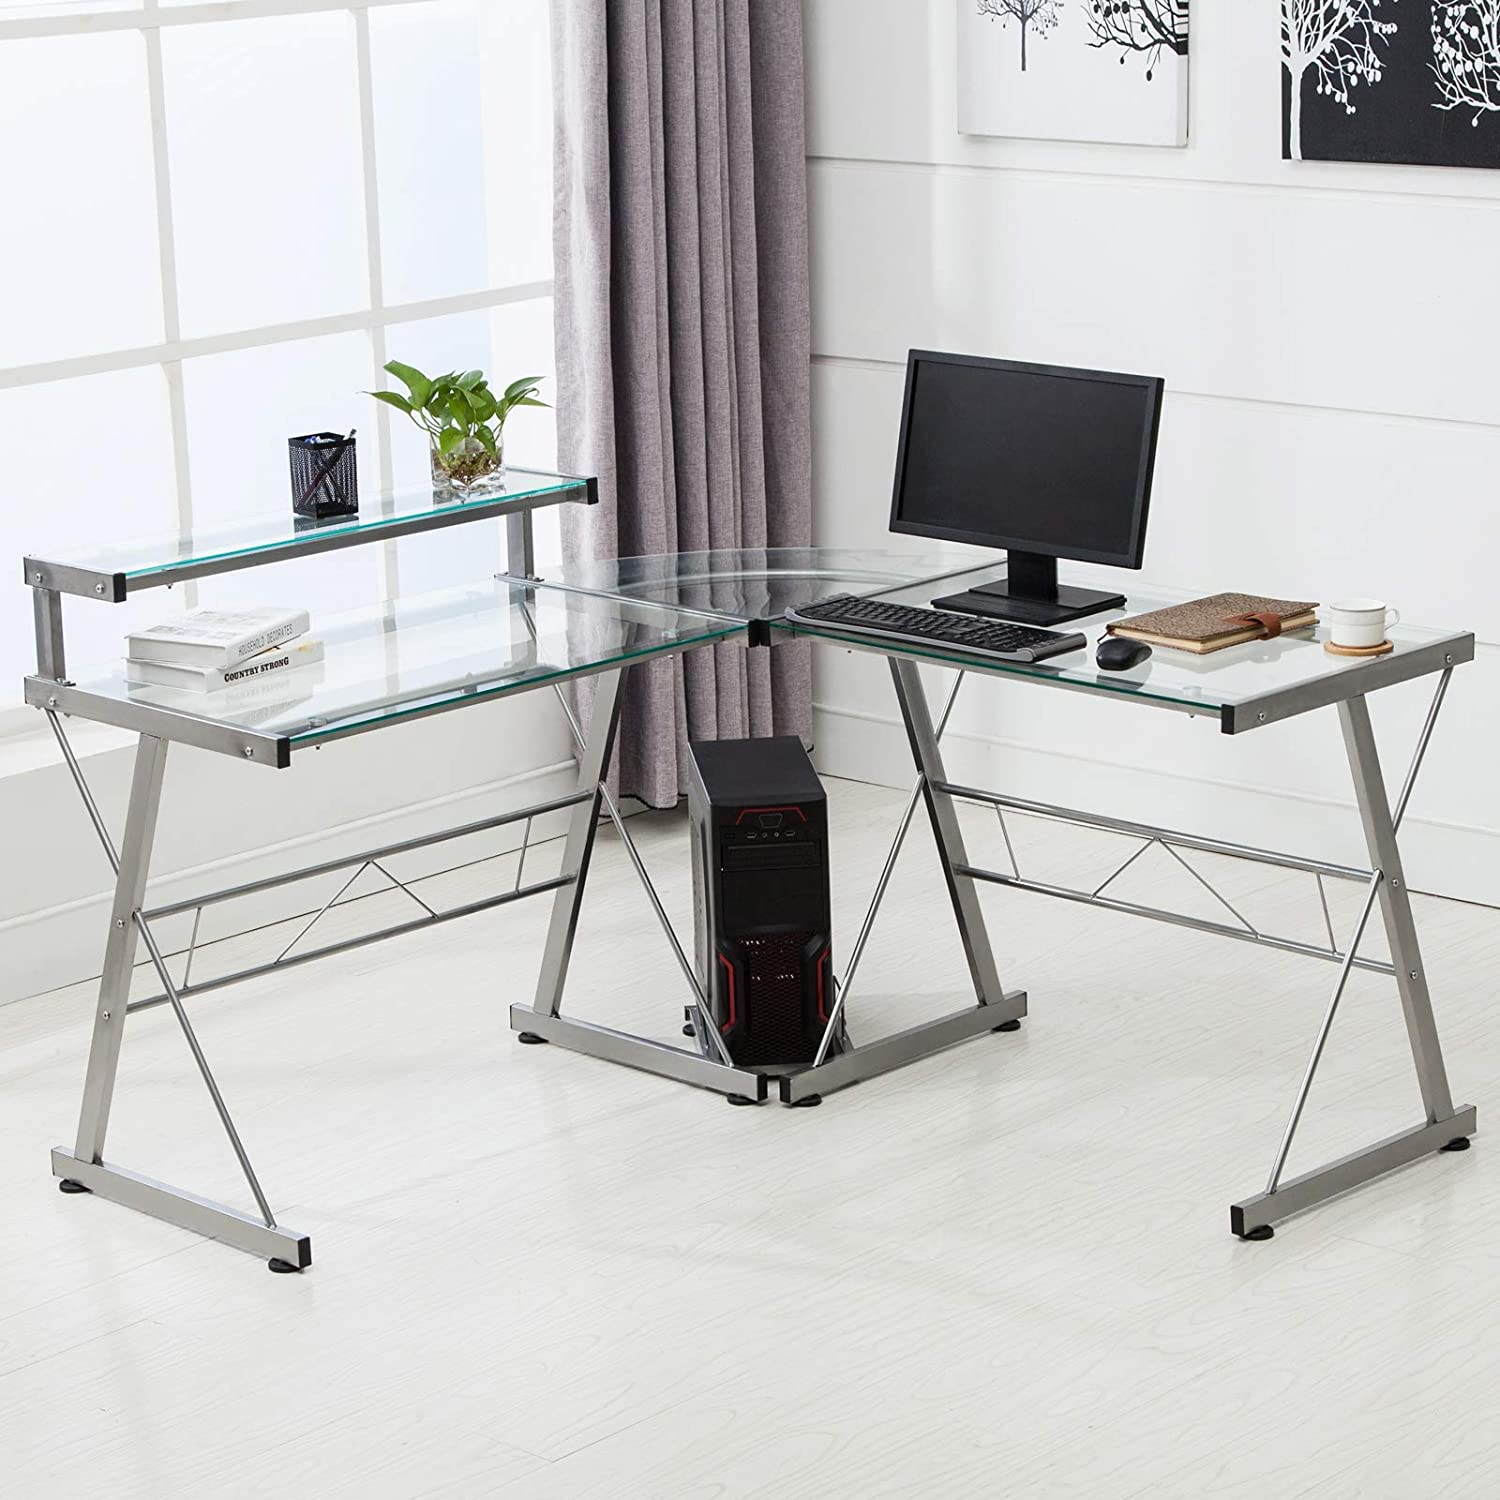 Mecor L-Shaped Corner Computer Desk with Shelf, Glass Laptop Home Office Furniture, Glass Metal, Clear